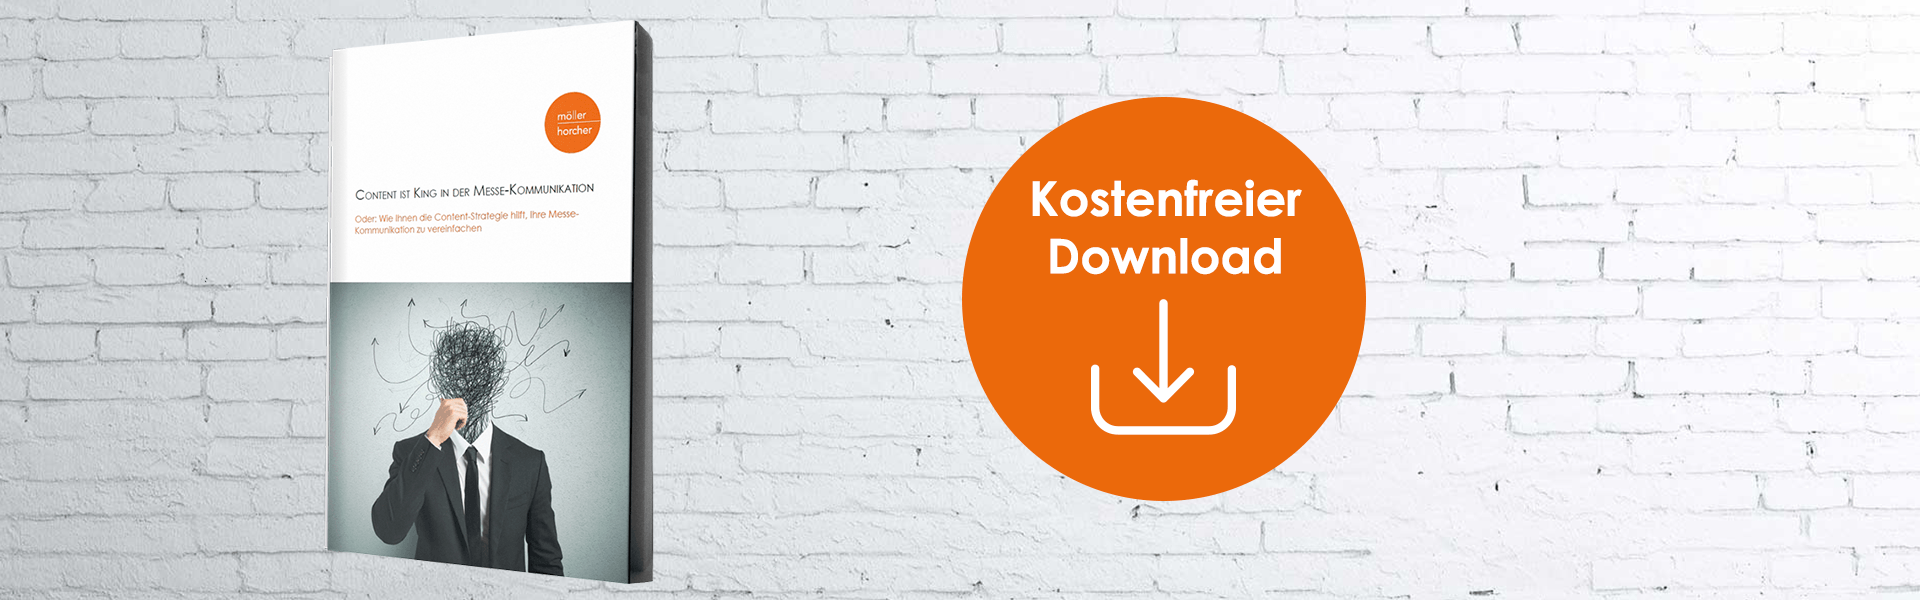 Möller Horcher E-Book: Content ist King in der Messekommunikation